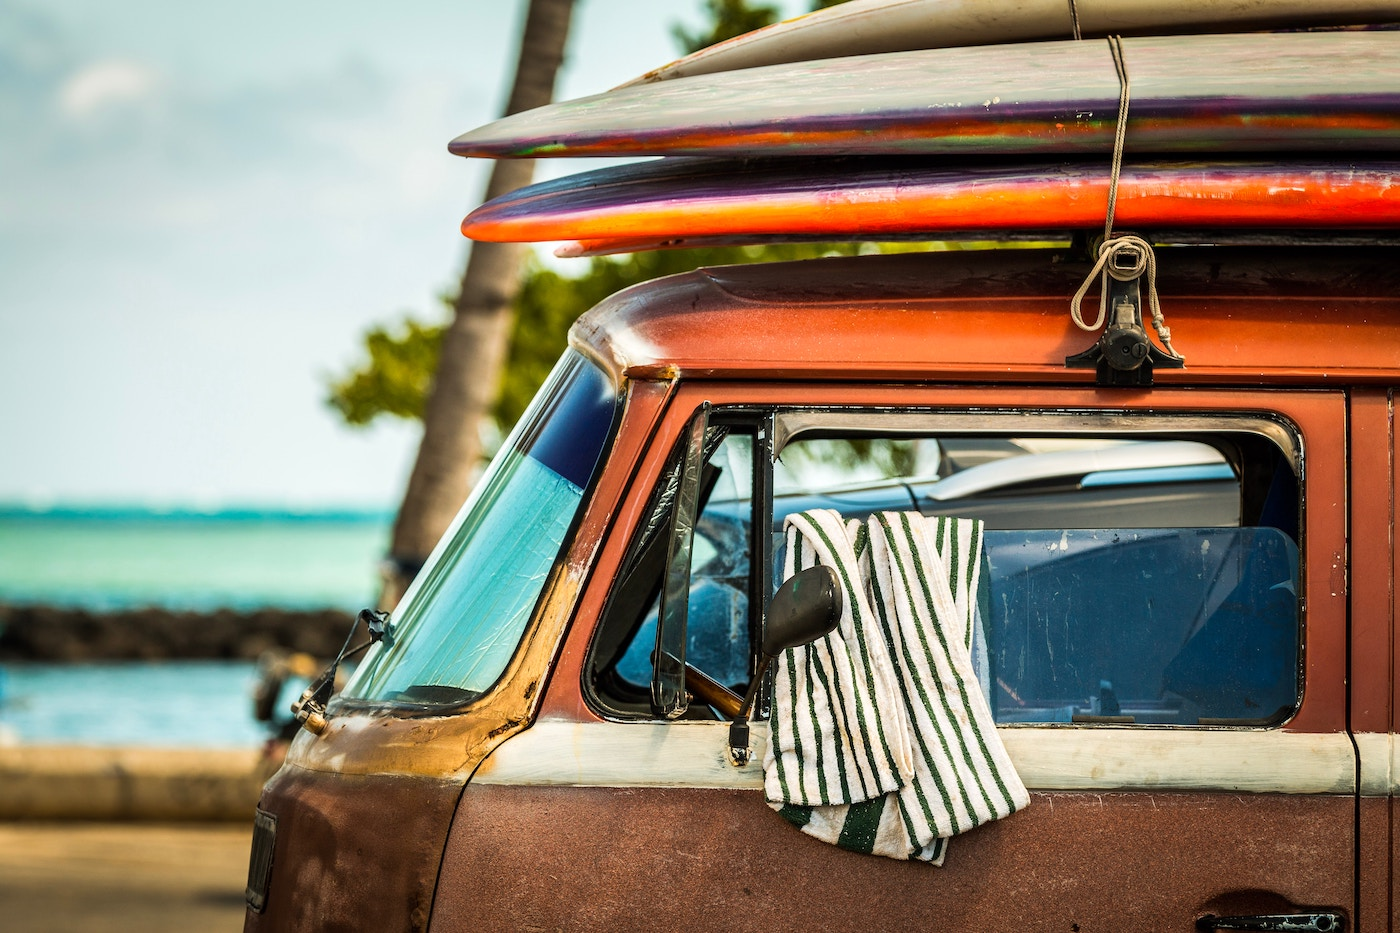 The Best Surf School to Learn to Surf